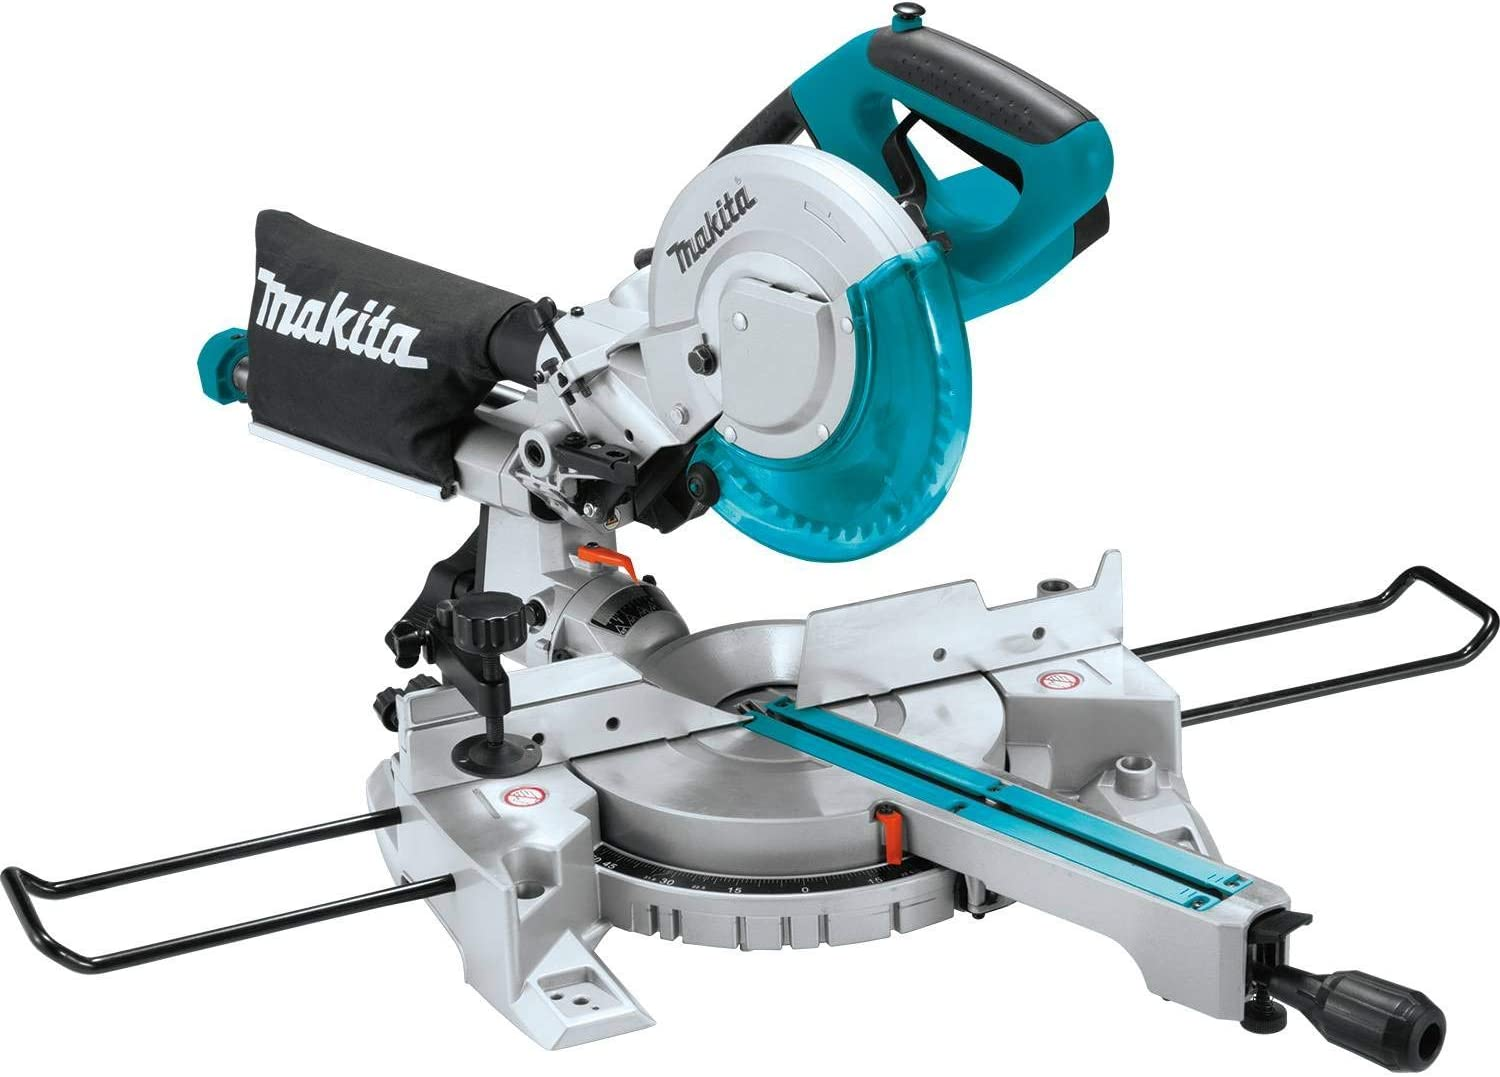 Makita LS0815F 8-1/2 Inch  Slide Compound Miter Saw